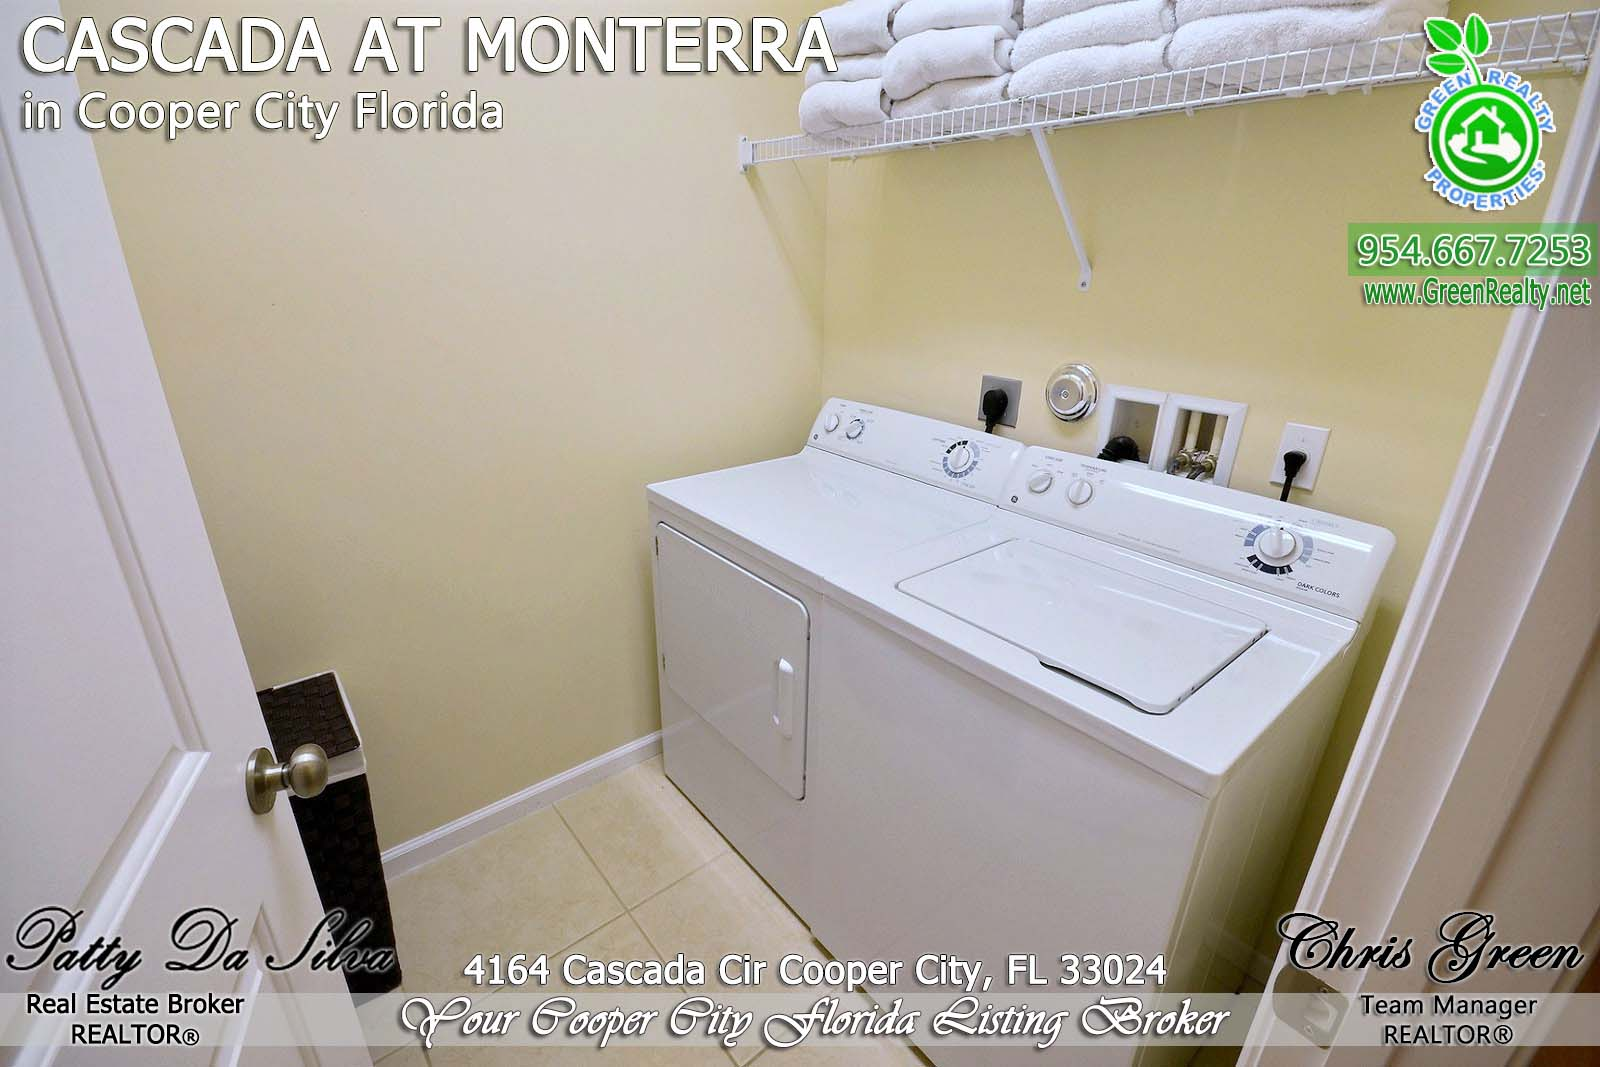 17 Cascada Townhomes For Sale